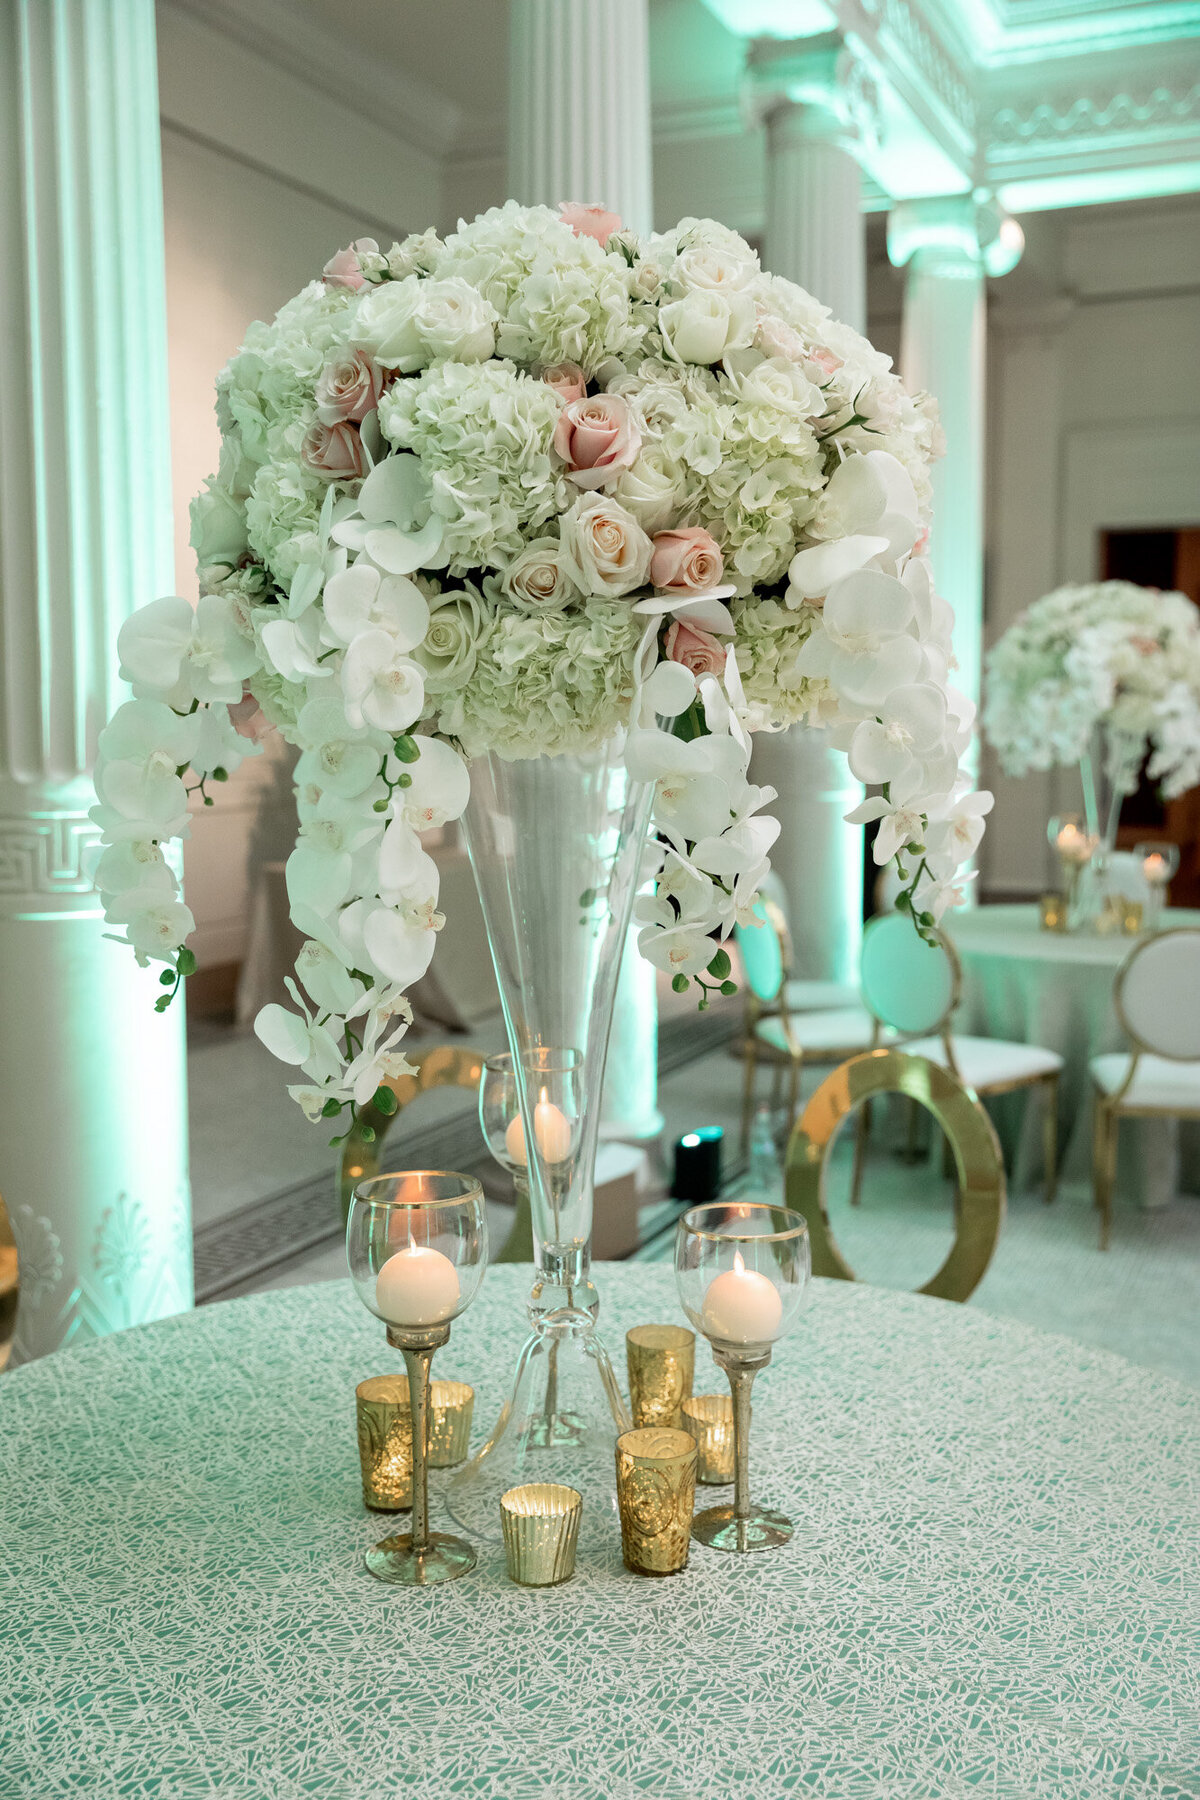 Lavishly Chic Designs Weddings Events Wedding Planning Coordination Designs New Orleans Louisiana Southern Destination South Delia King49